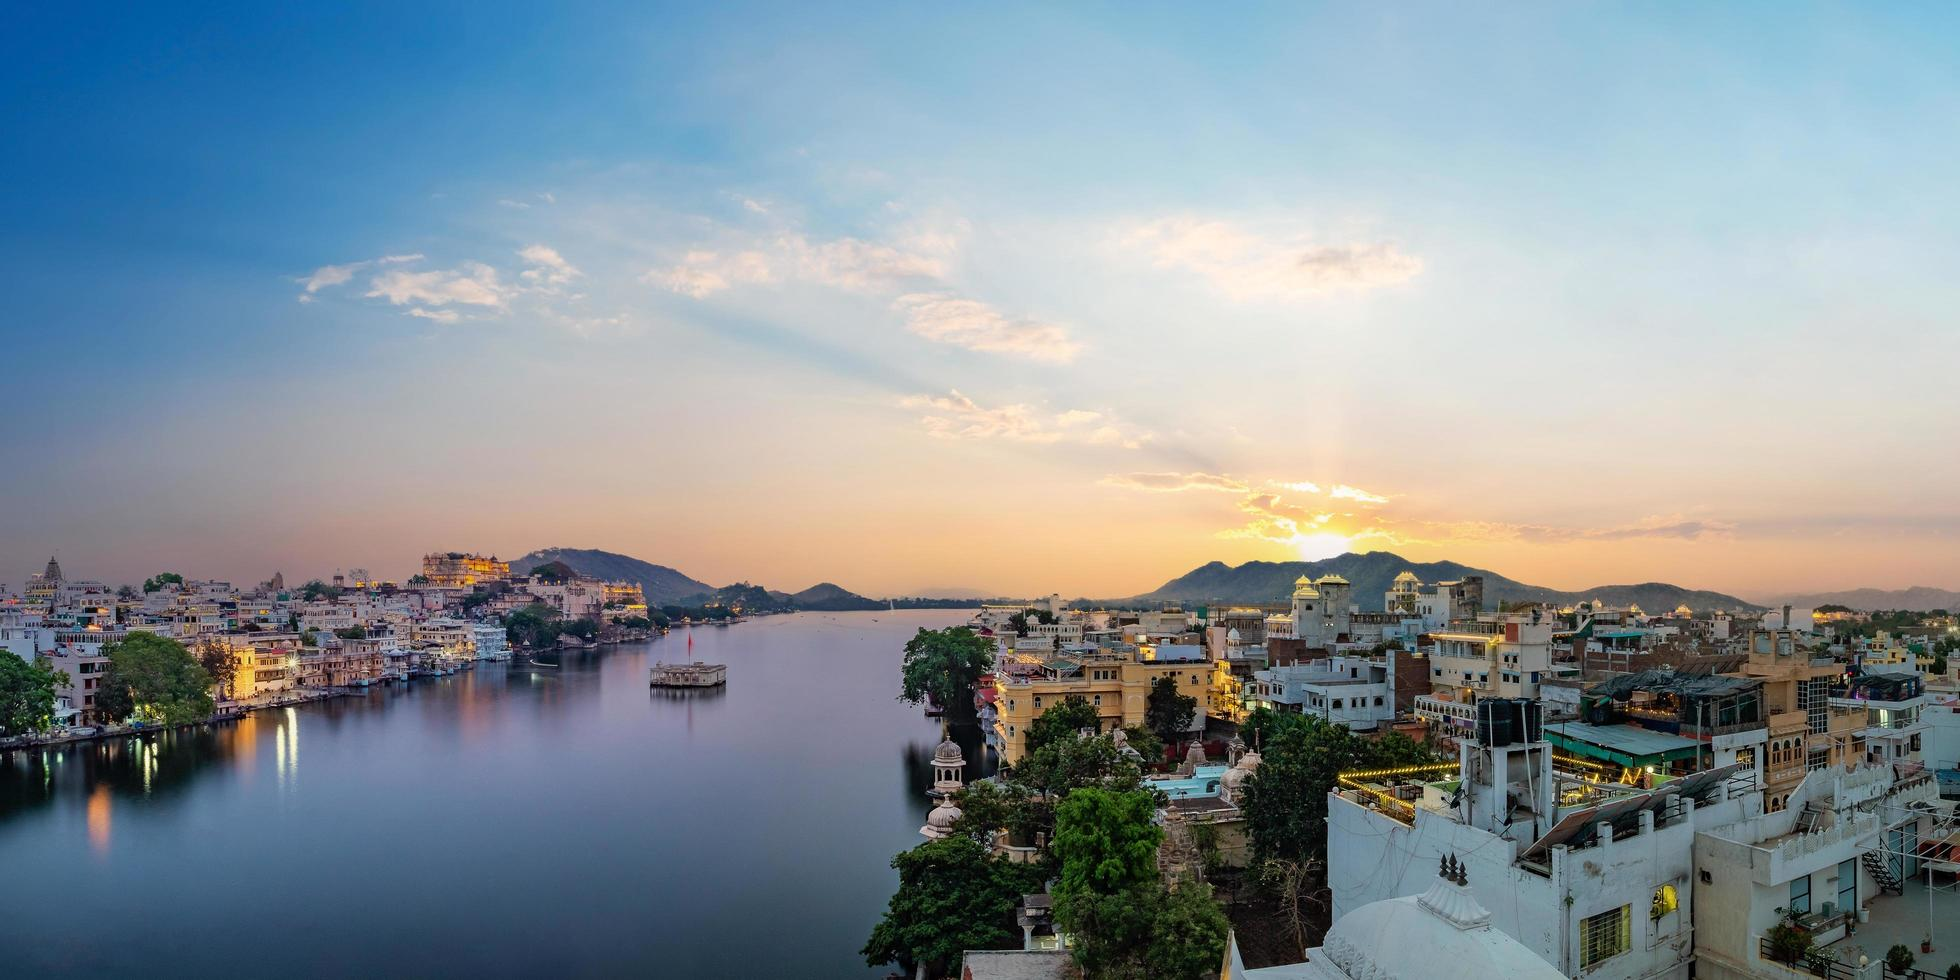 Udaipur city at lake Pichola in the evening photo